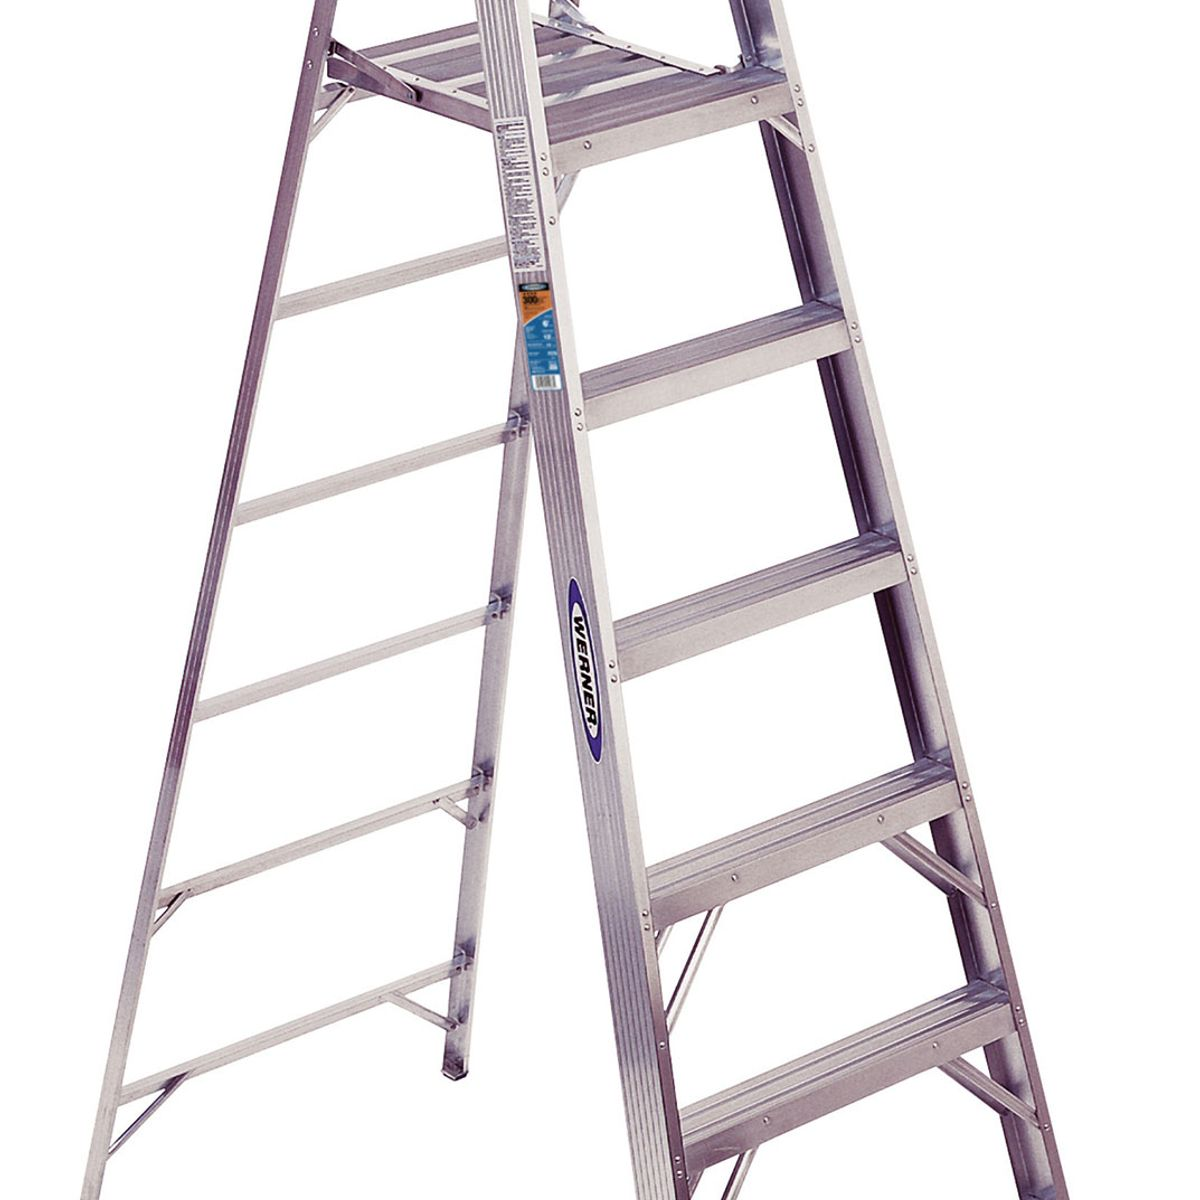 Step Ladders Lowes Werner 6ft Fiberglass Type 1a 300 Lbs